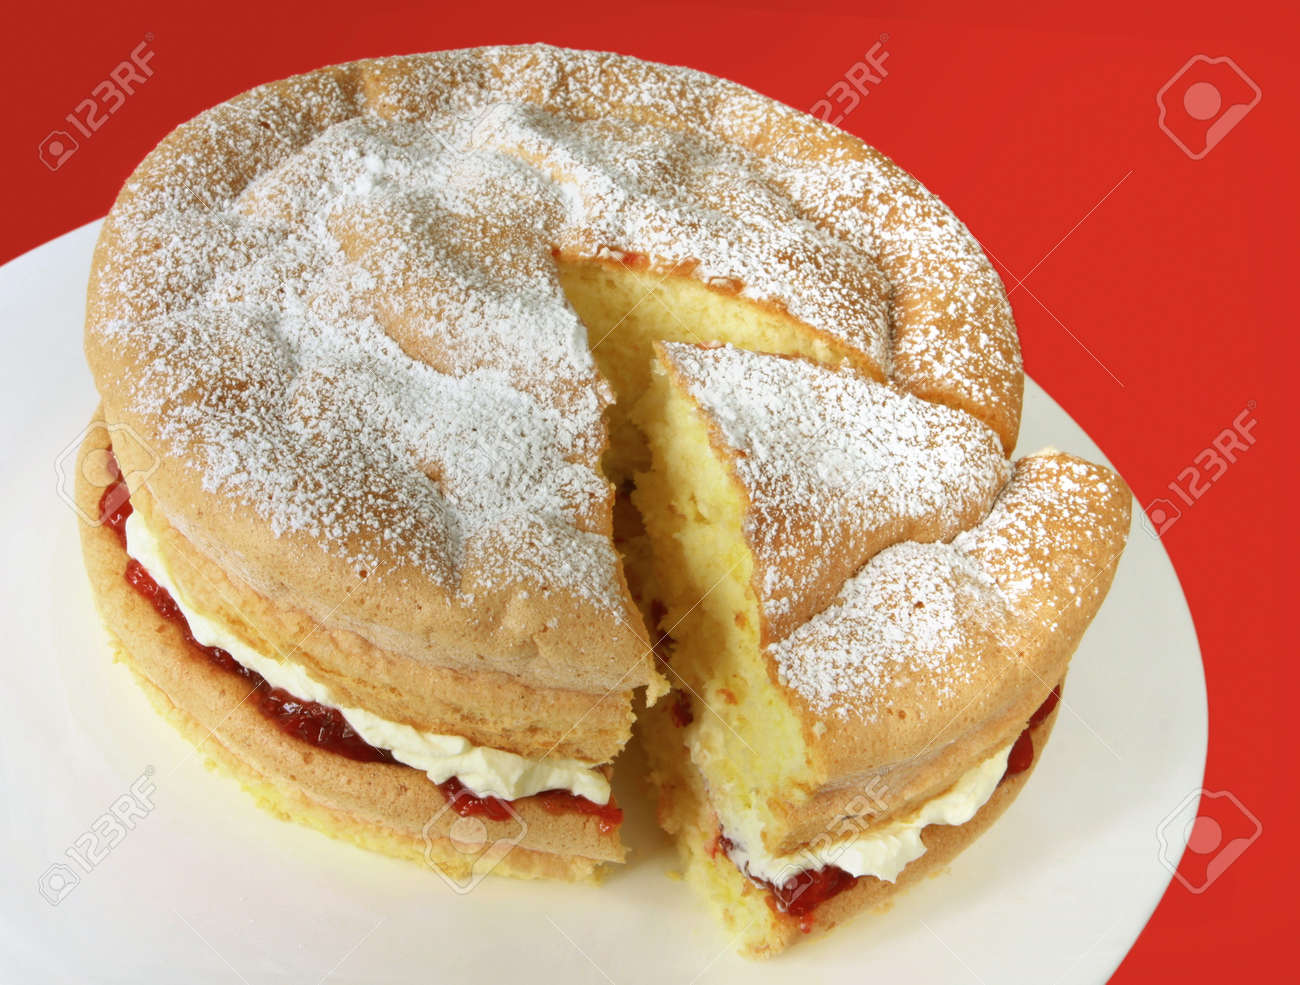 Home-baked sponge cake filled with fresh whipped cream and strawberry jam, and topped with powdered sugar. Stock Photo - 4467079